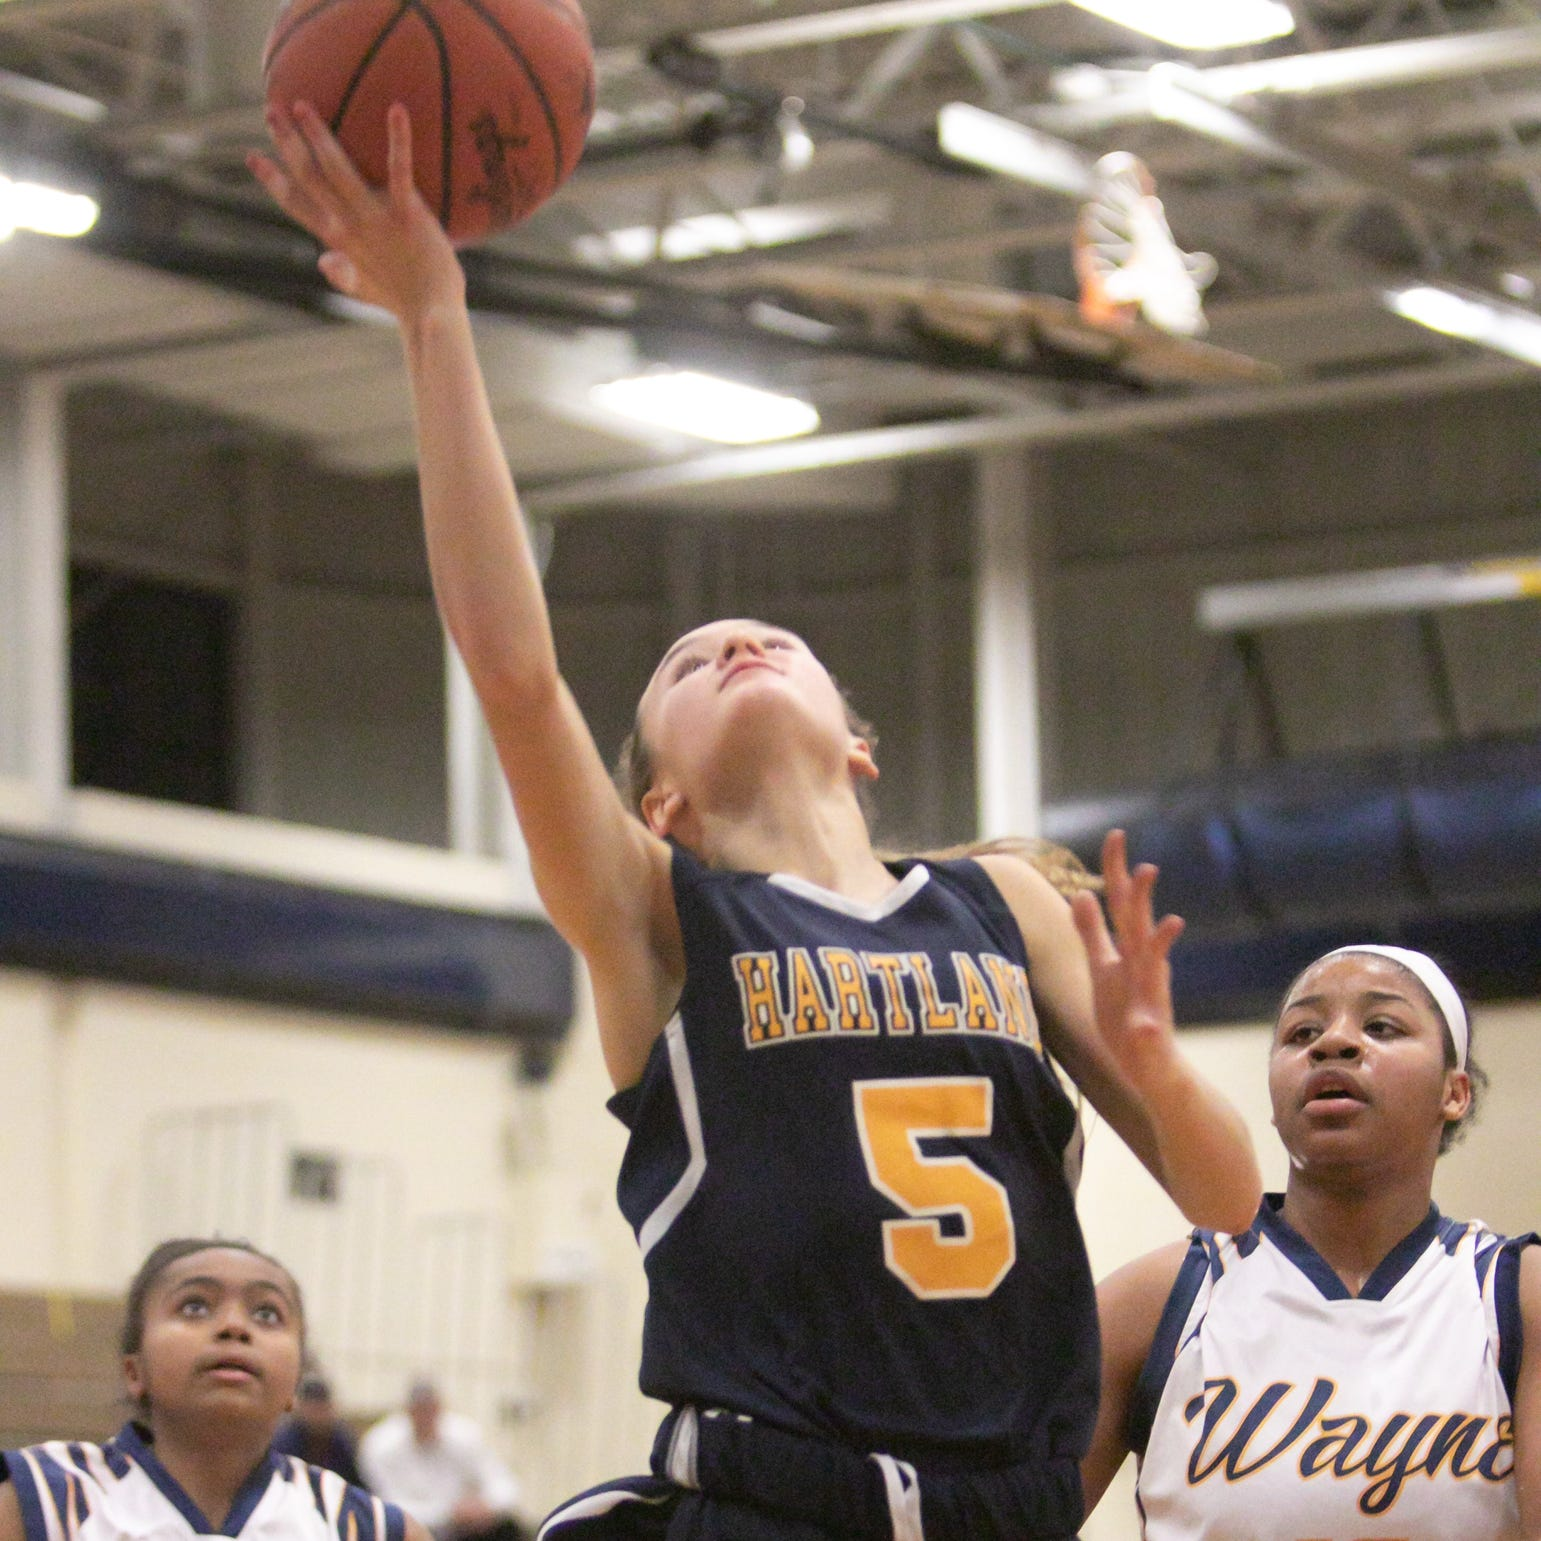 Four takeaways from Hartland-Wayne Memorial girls basketball game